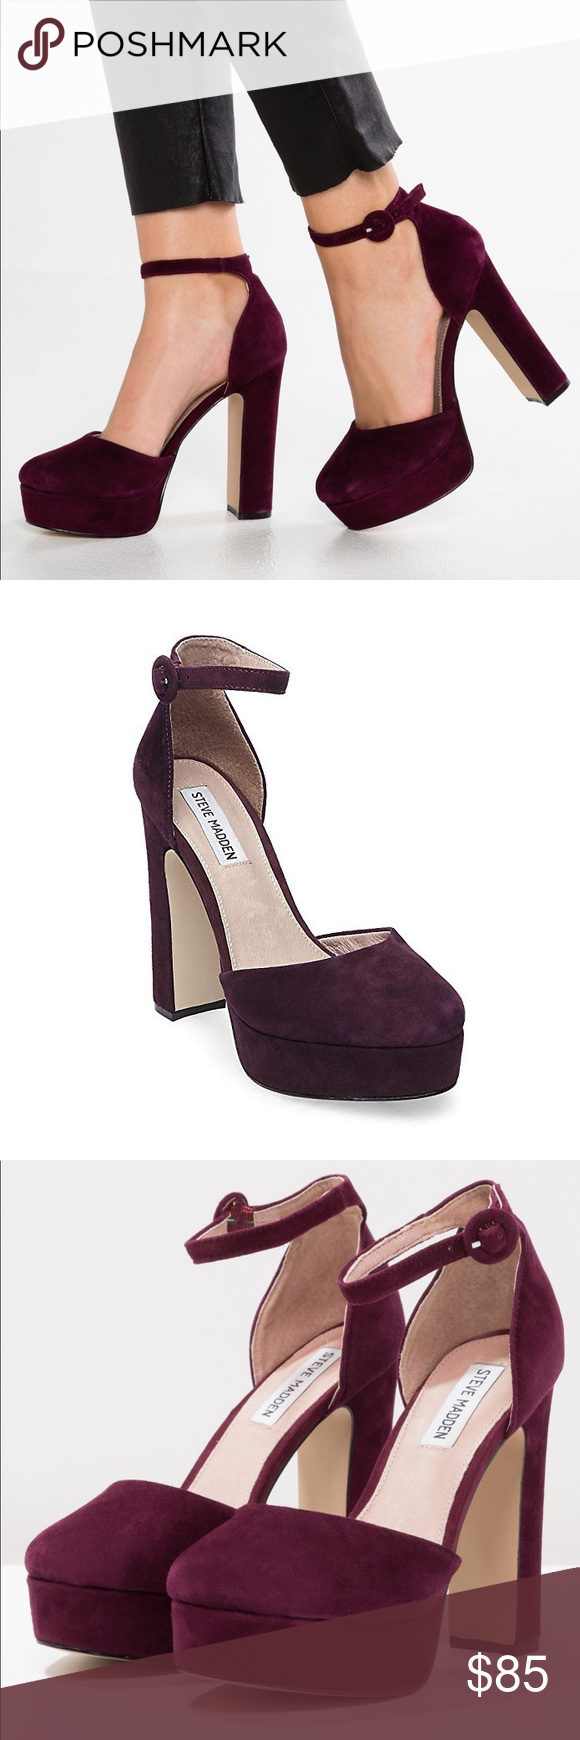 0696703a35c0 Steve Madden cordial burgundy suede heels 6.5 new steve madden cordial - high  heels burgundy women shoes heels high heels New with box material   care  upper ...